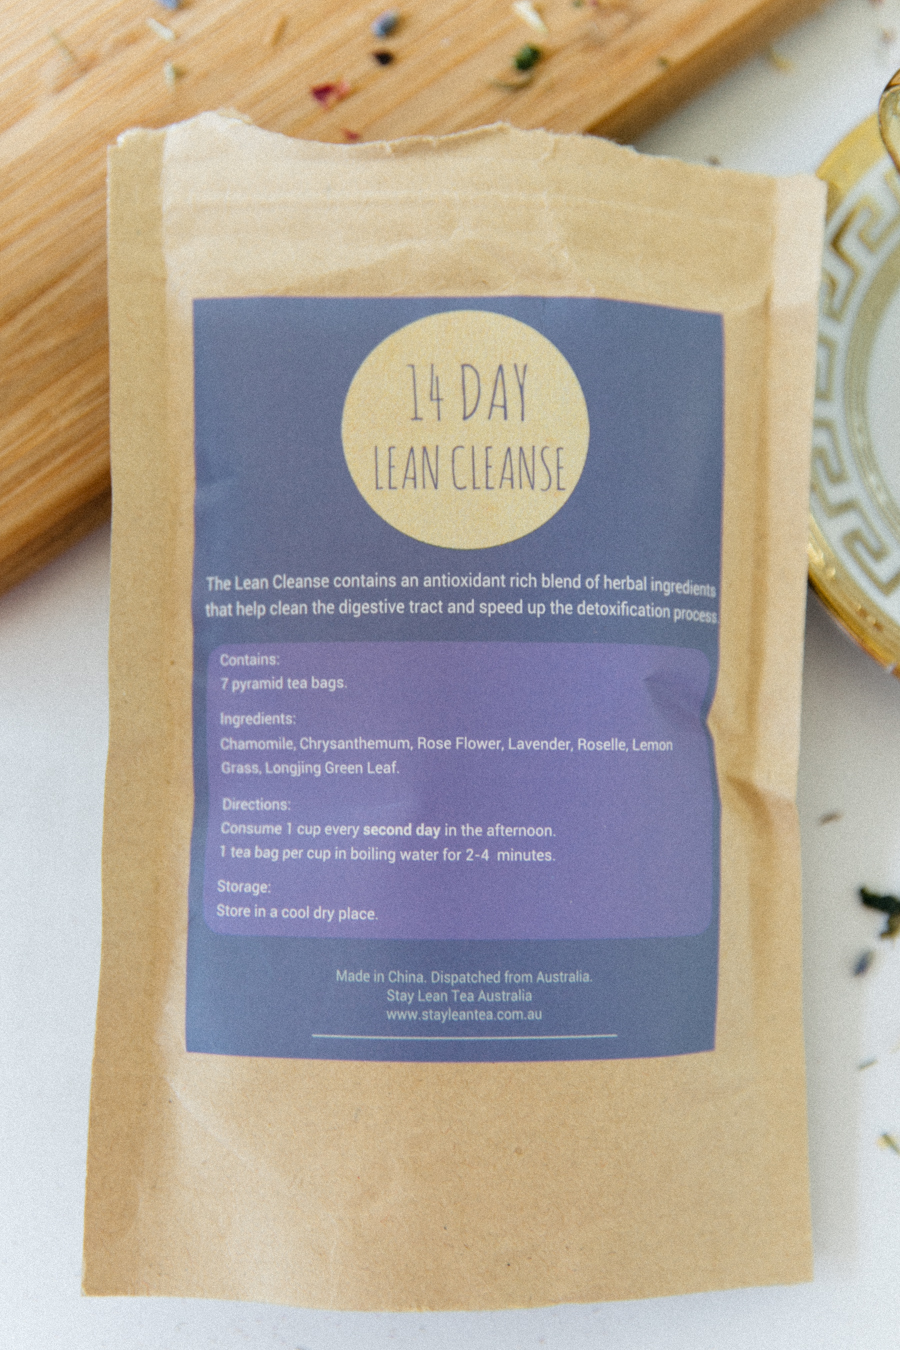 The best 14 day tea cleanser.